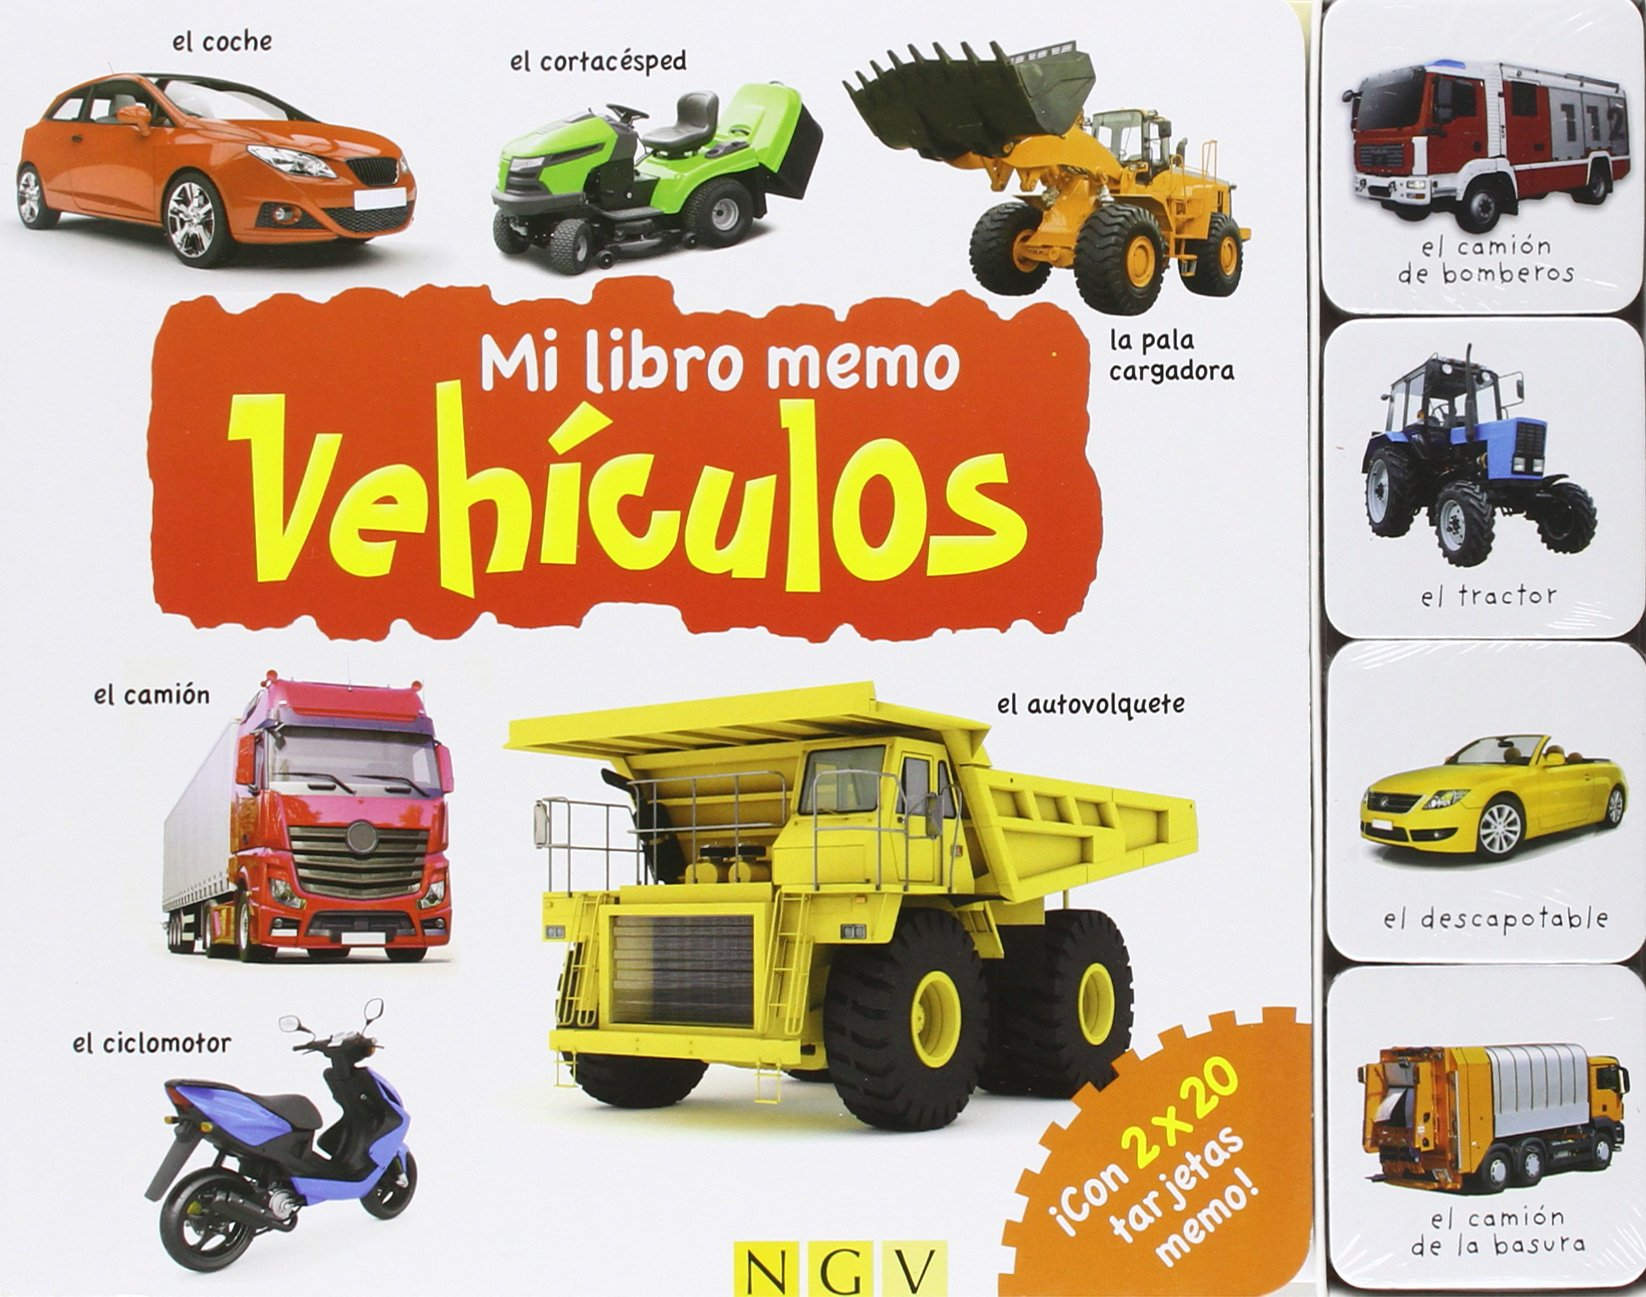 Vehiculos: VV.AA.: 9783849906283: Amazon.com: Books